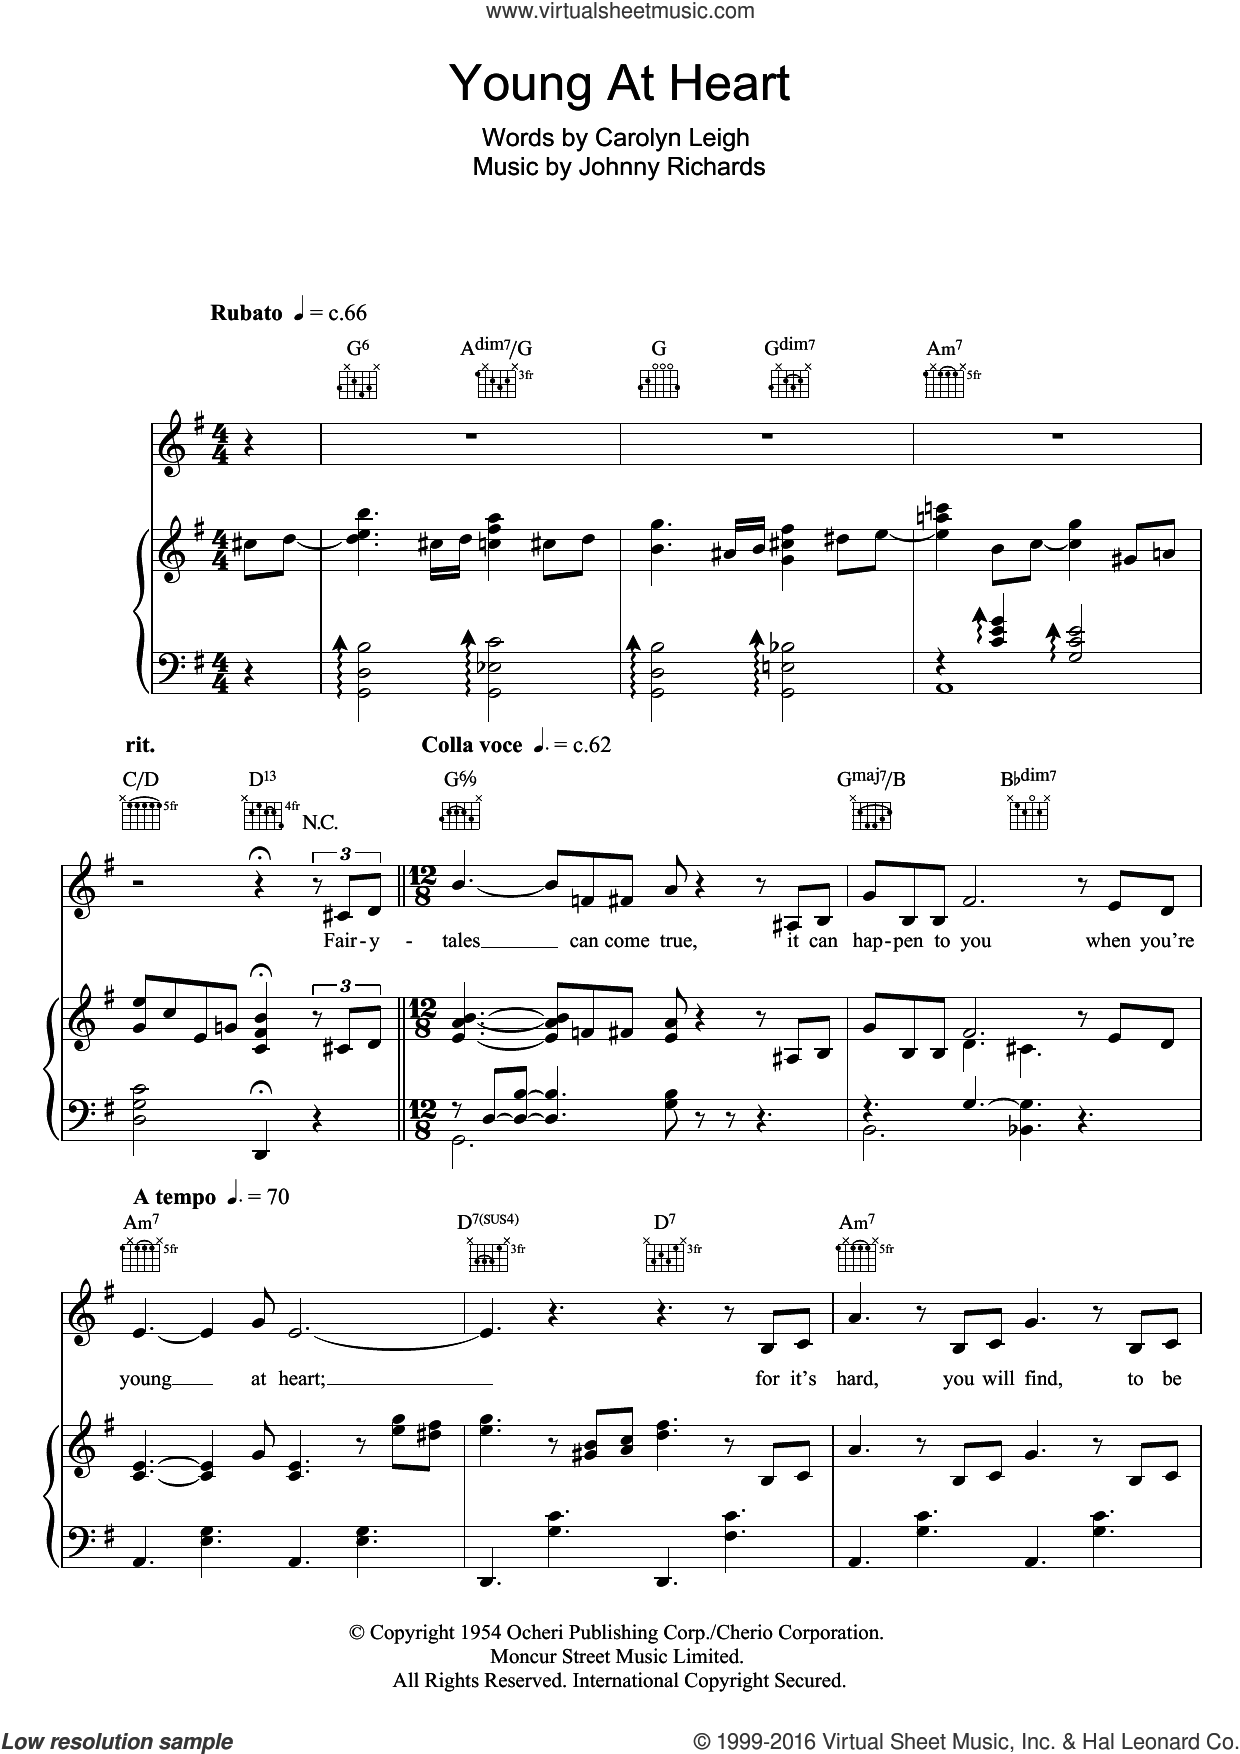 Young At Heart sheet music for voice, piano or guitar by Michael Buble, Frank Sinatra, Carolyn Leigh and Johnny Richards, intermediate skill level